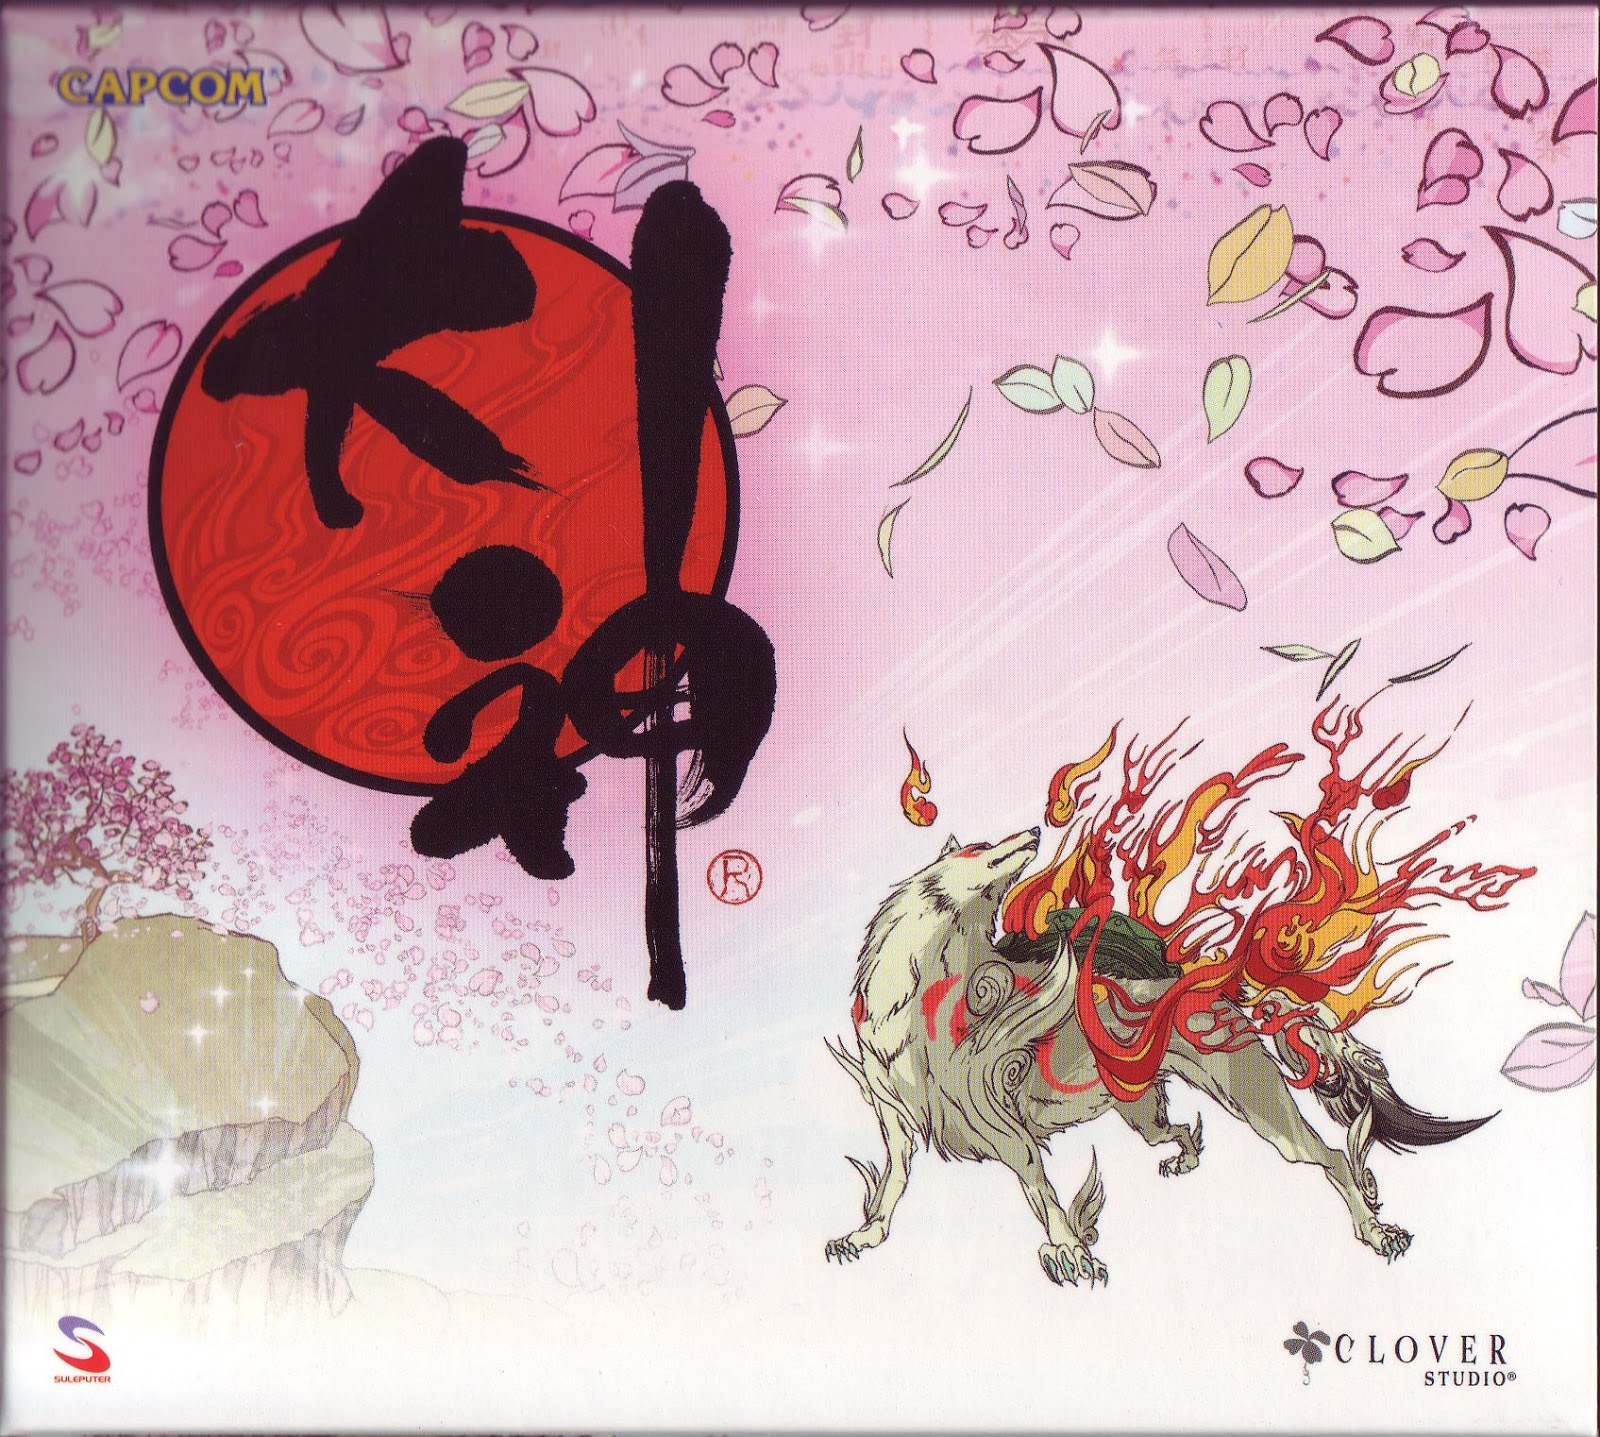 Ōkami Original Soundtrack | Ōkami Wiki | FANDOM powered by Wikia